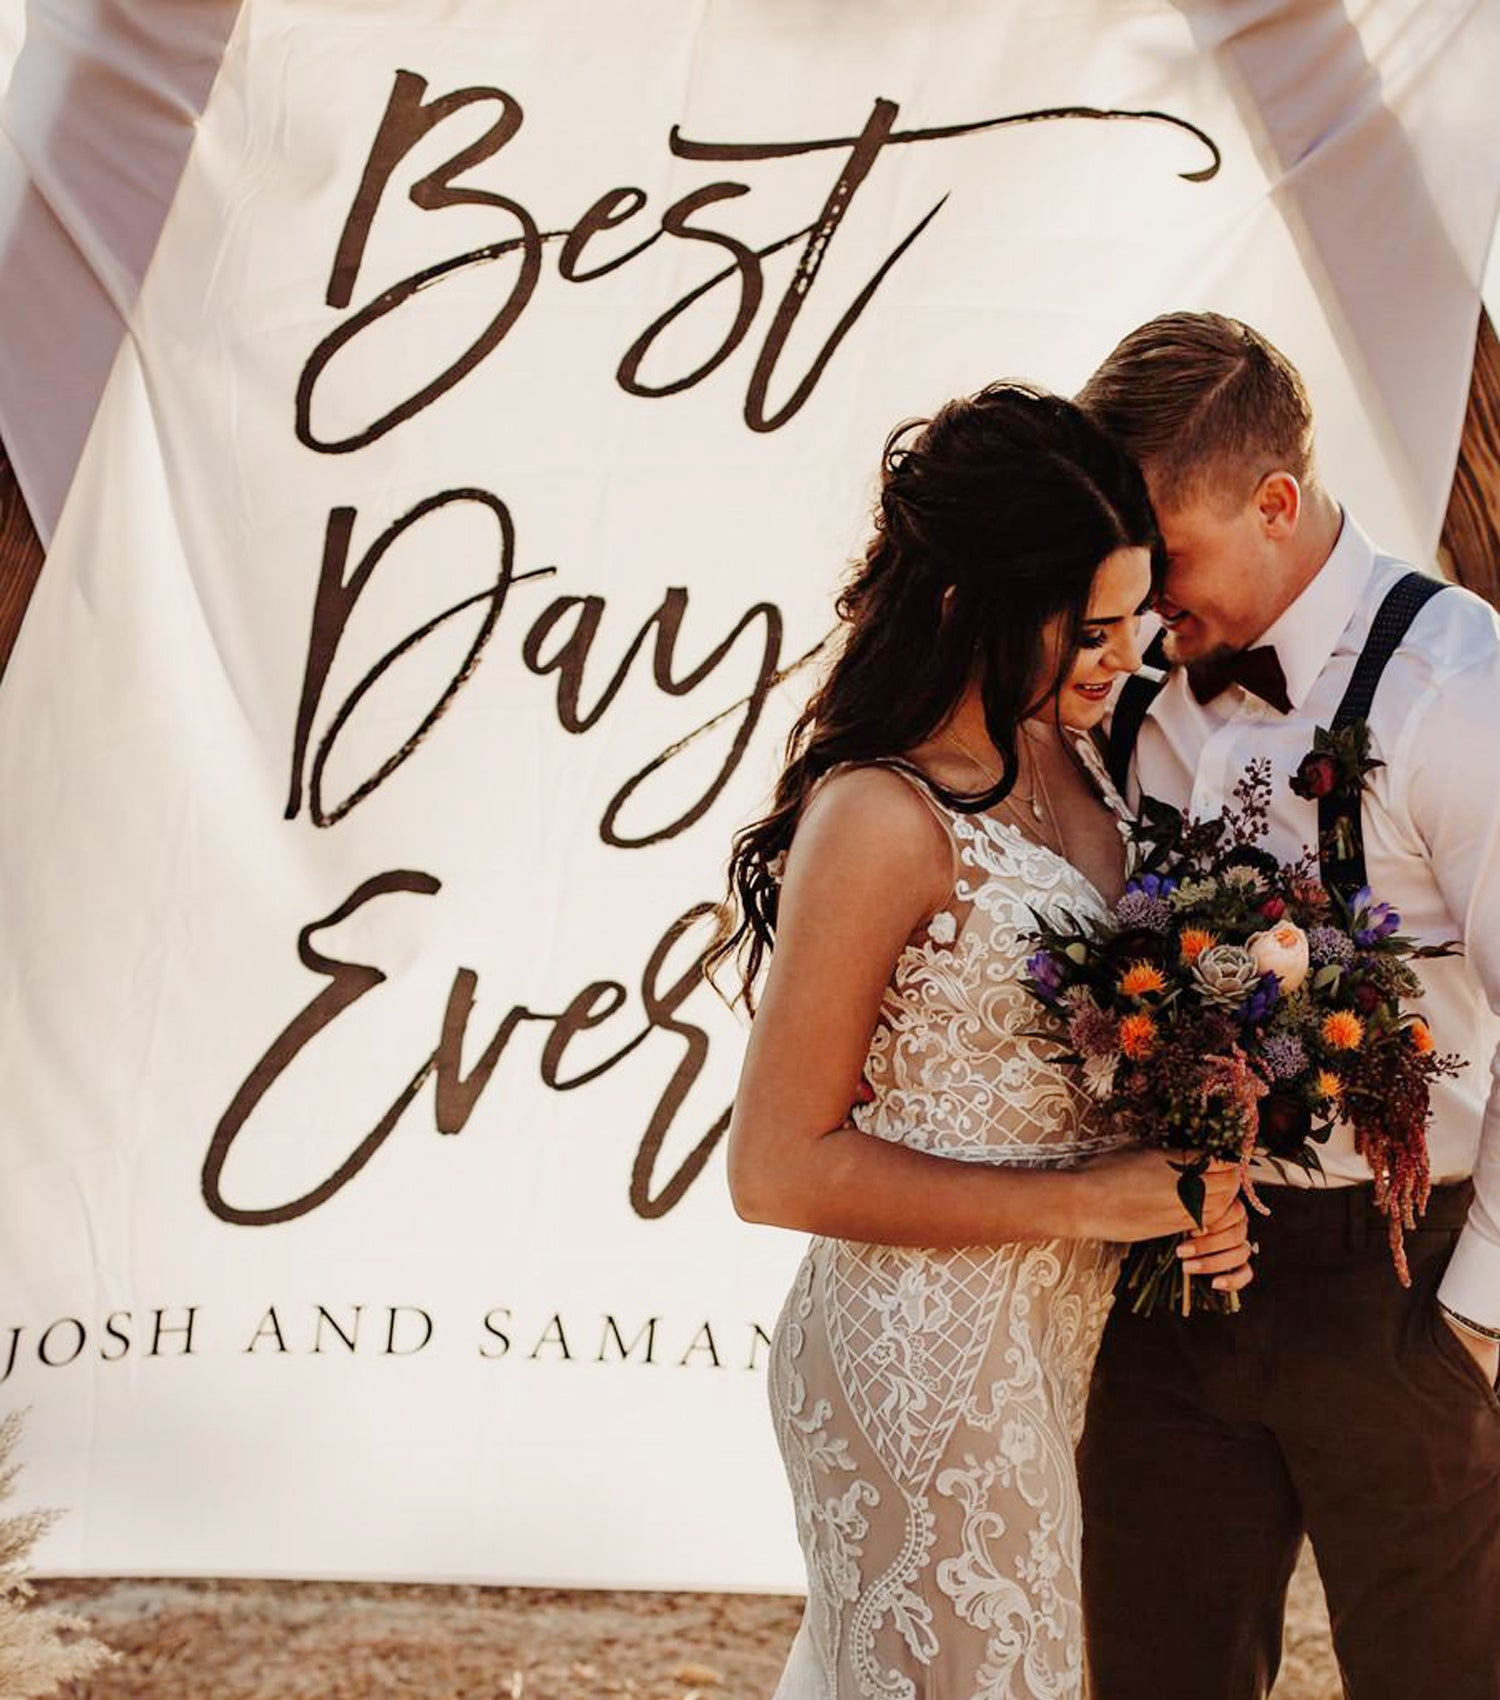 Best Day Ever Wedding Backdrop For Ceremony Blushing Drops